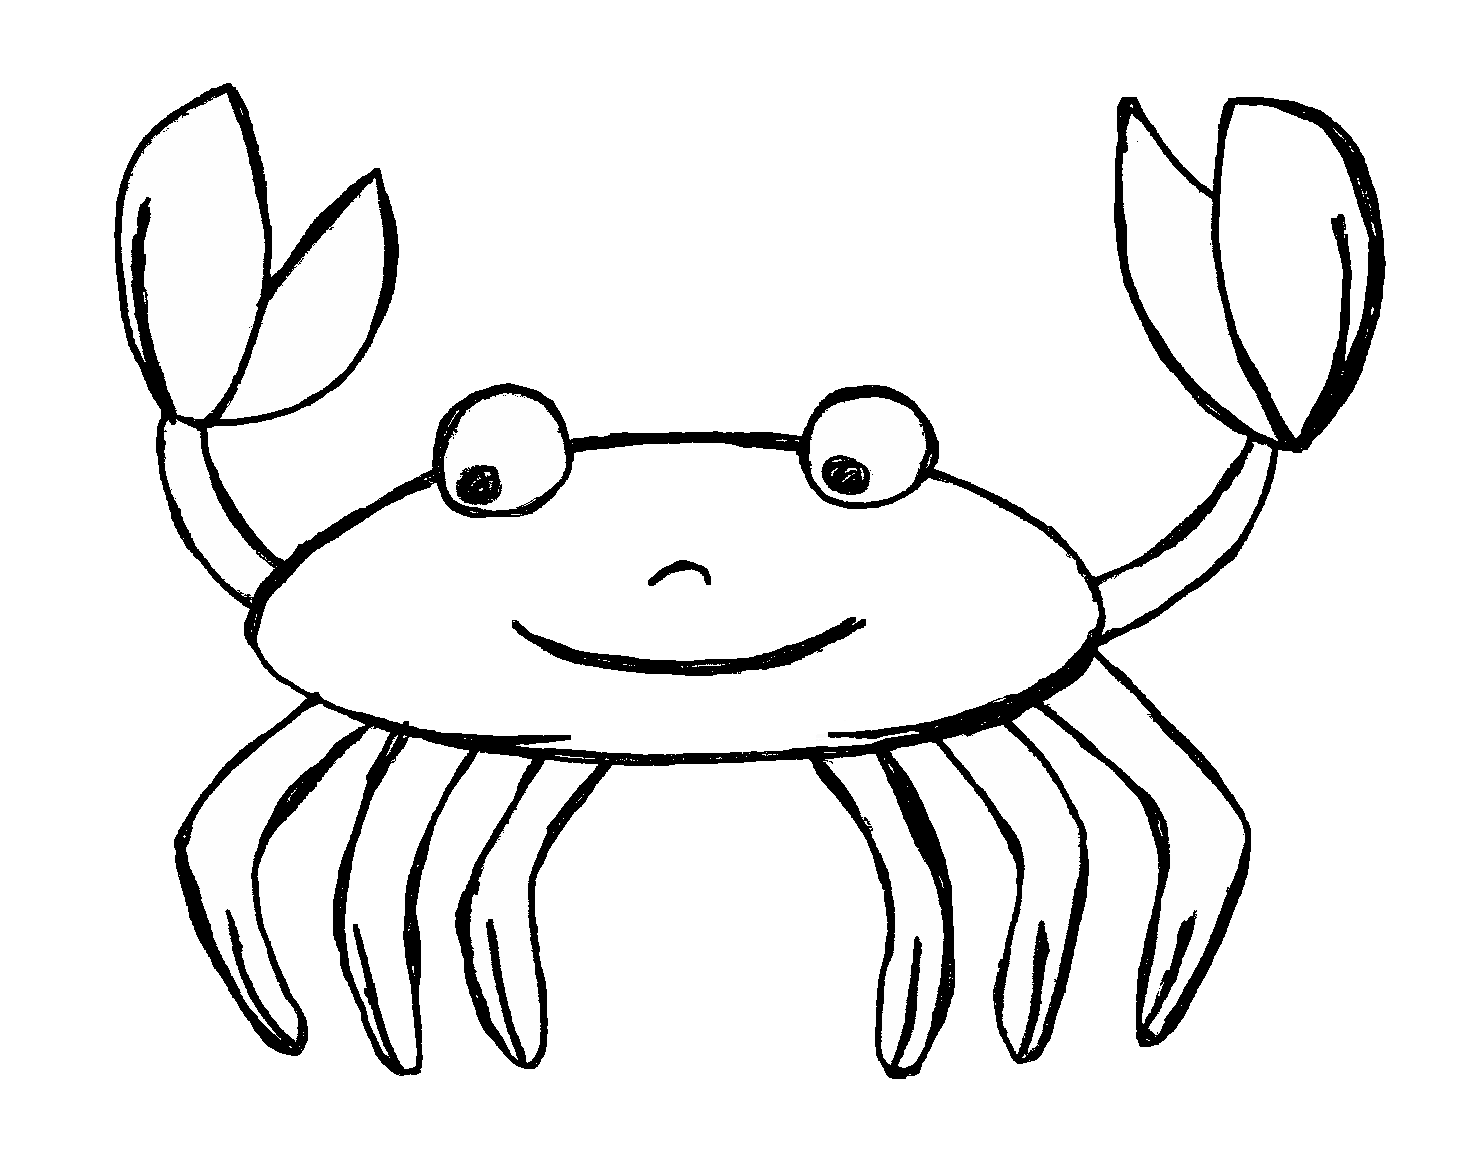 Apple crab clipart black and white clip transparent stock Clip Art by Carrie Teaching First: Ocean Doodles Clip Art with FREEBIE clip transparent stock